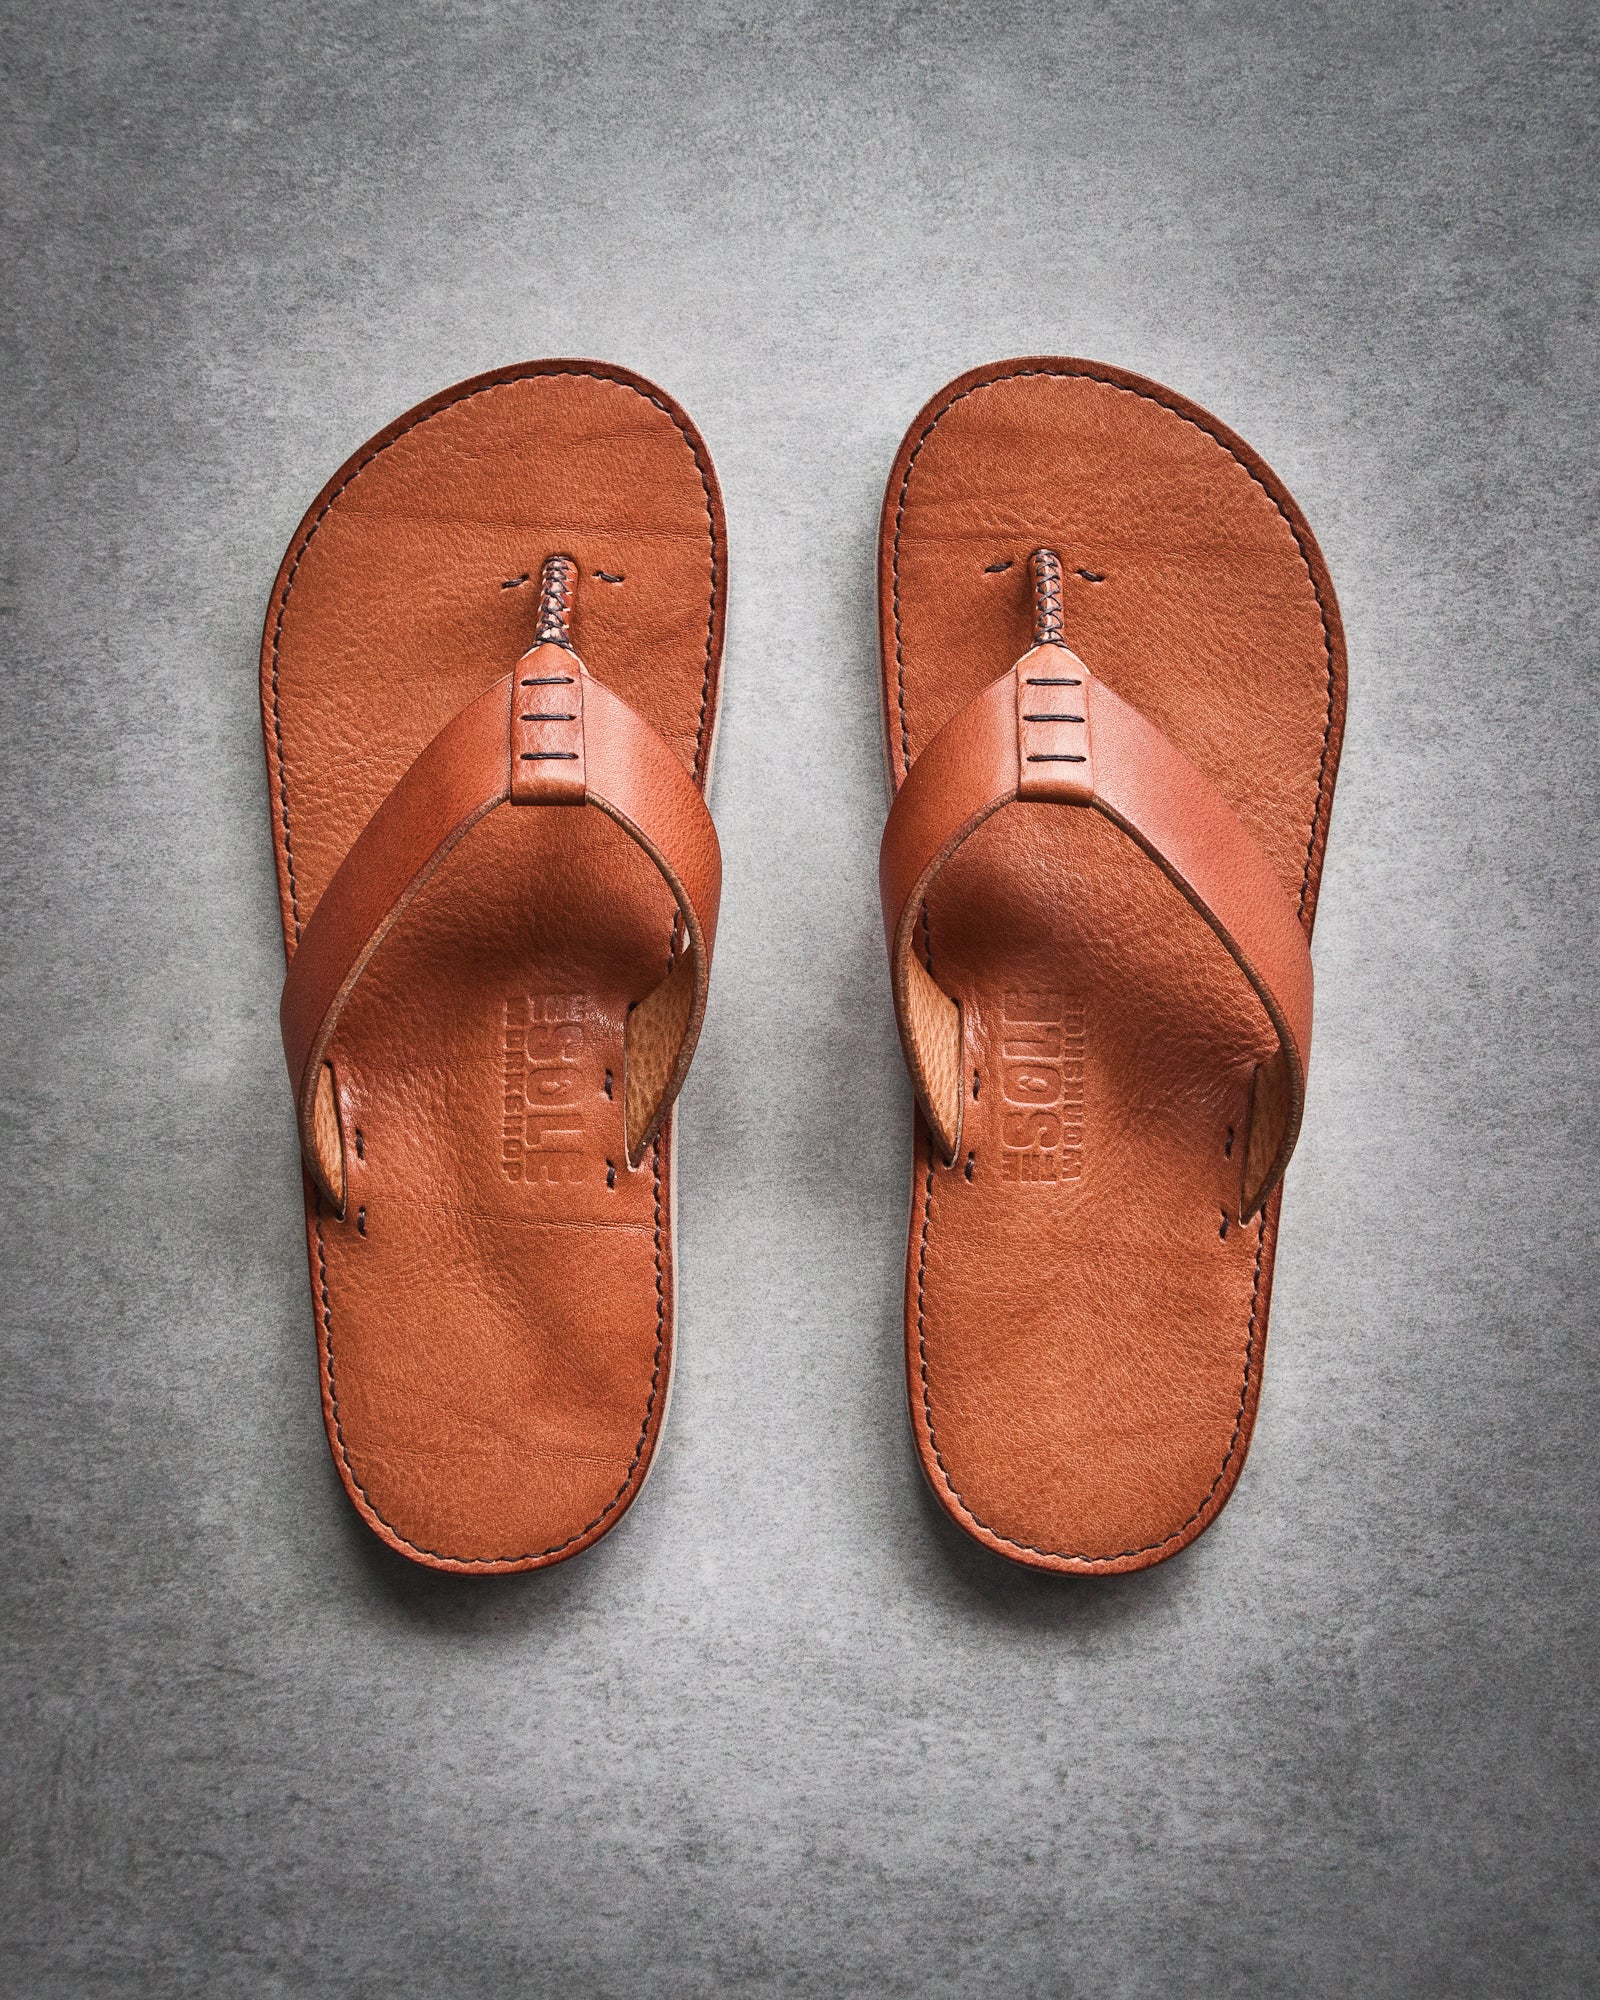 VegTan Original Wanderer in Sedona Leather